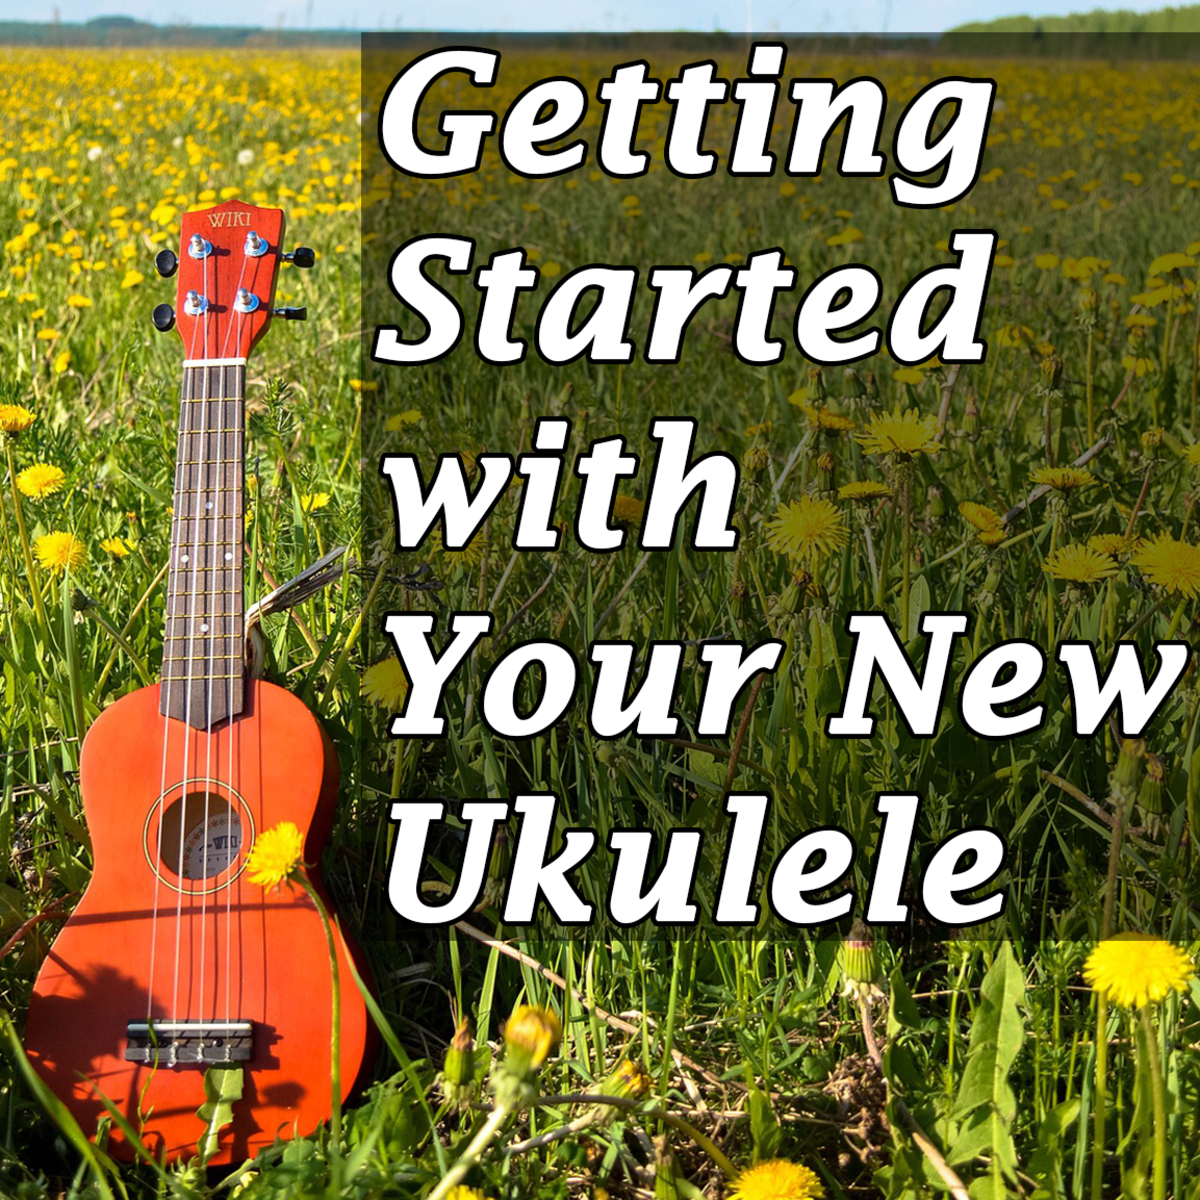 Getting Started With Your New Ukulele